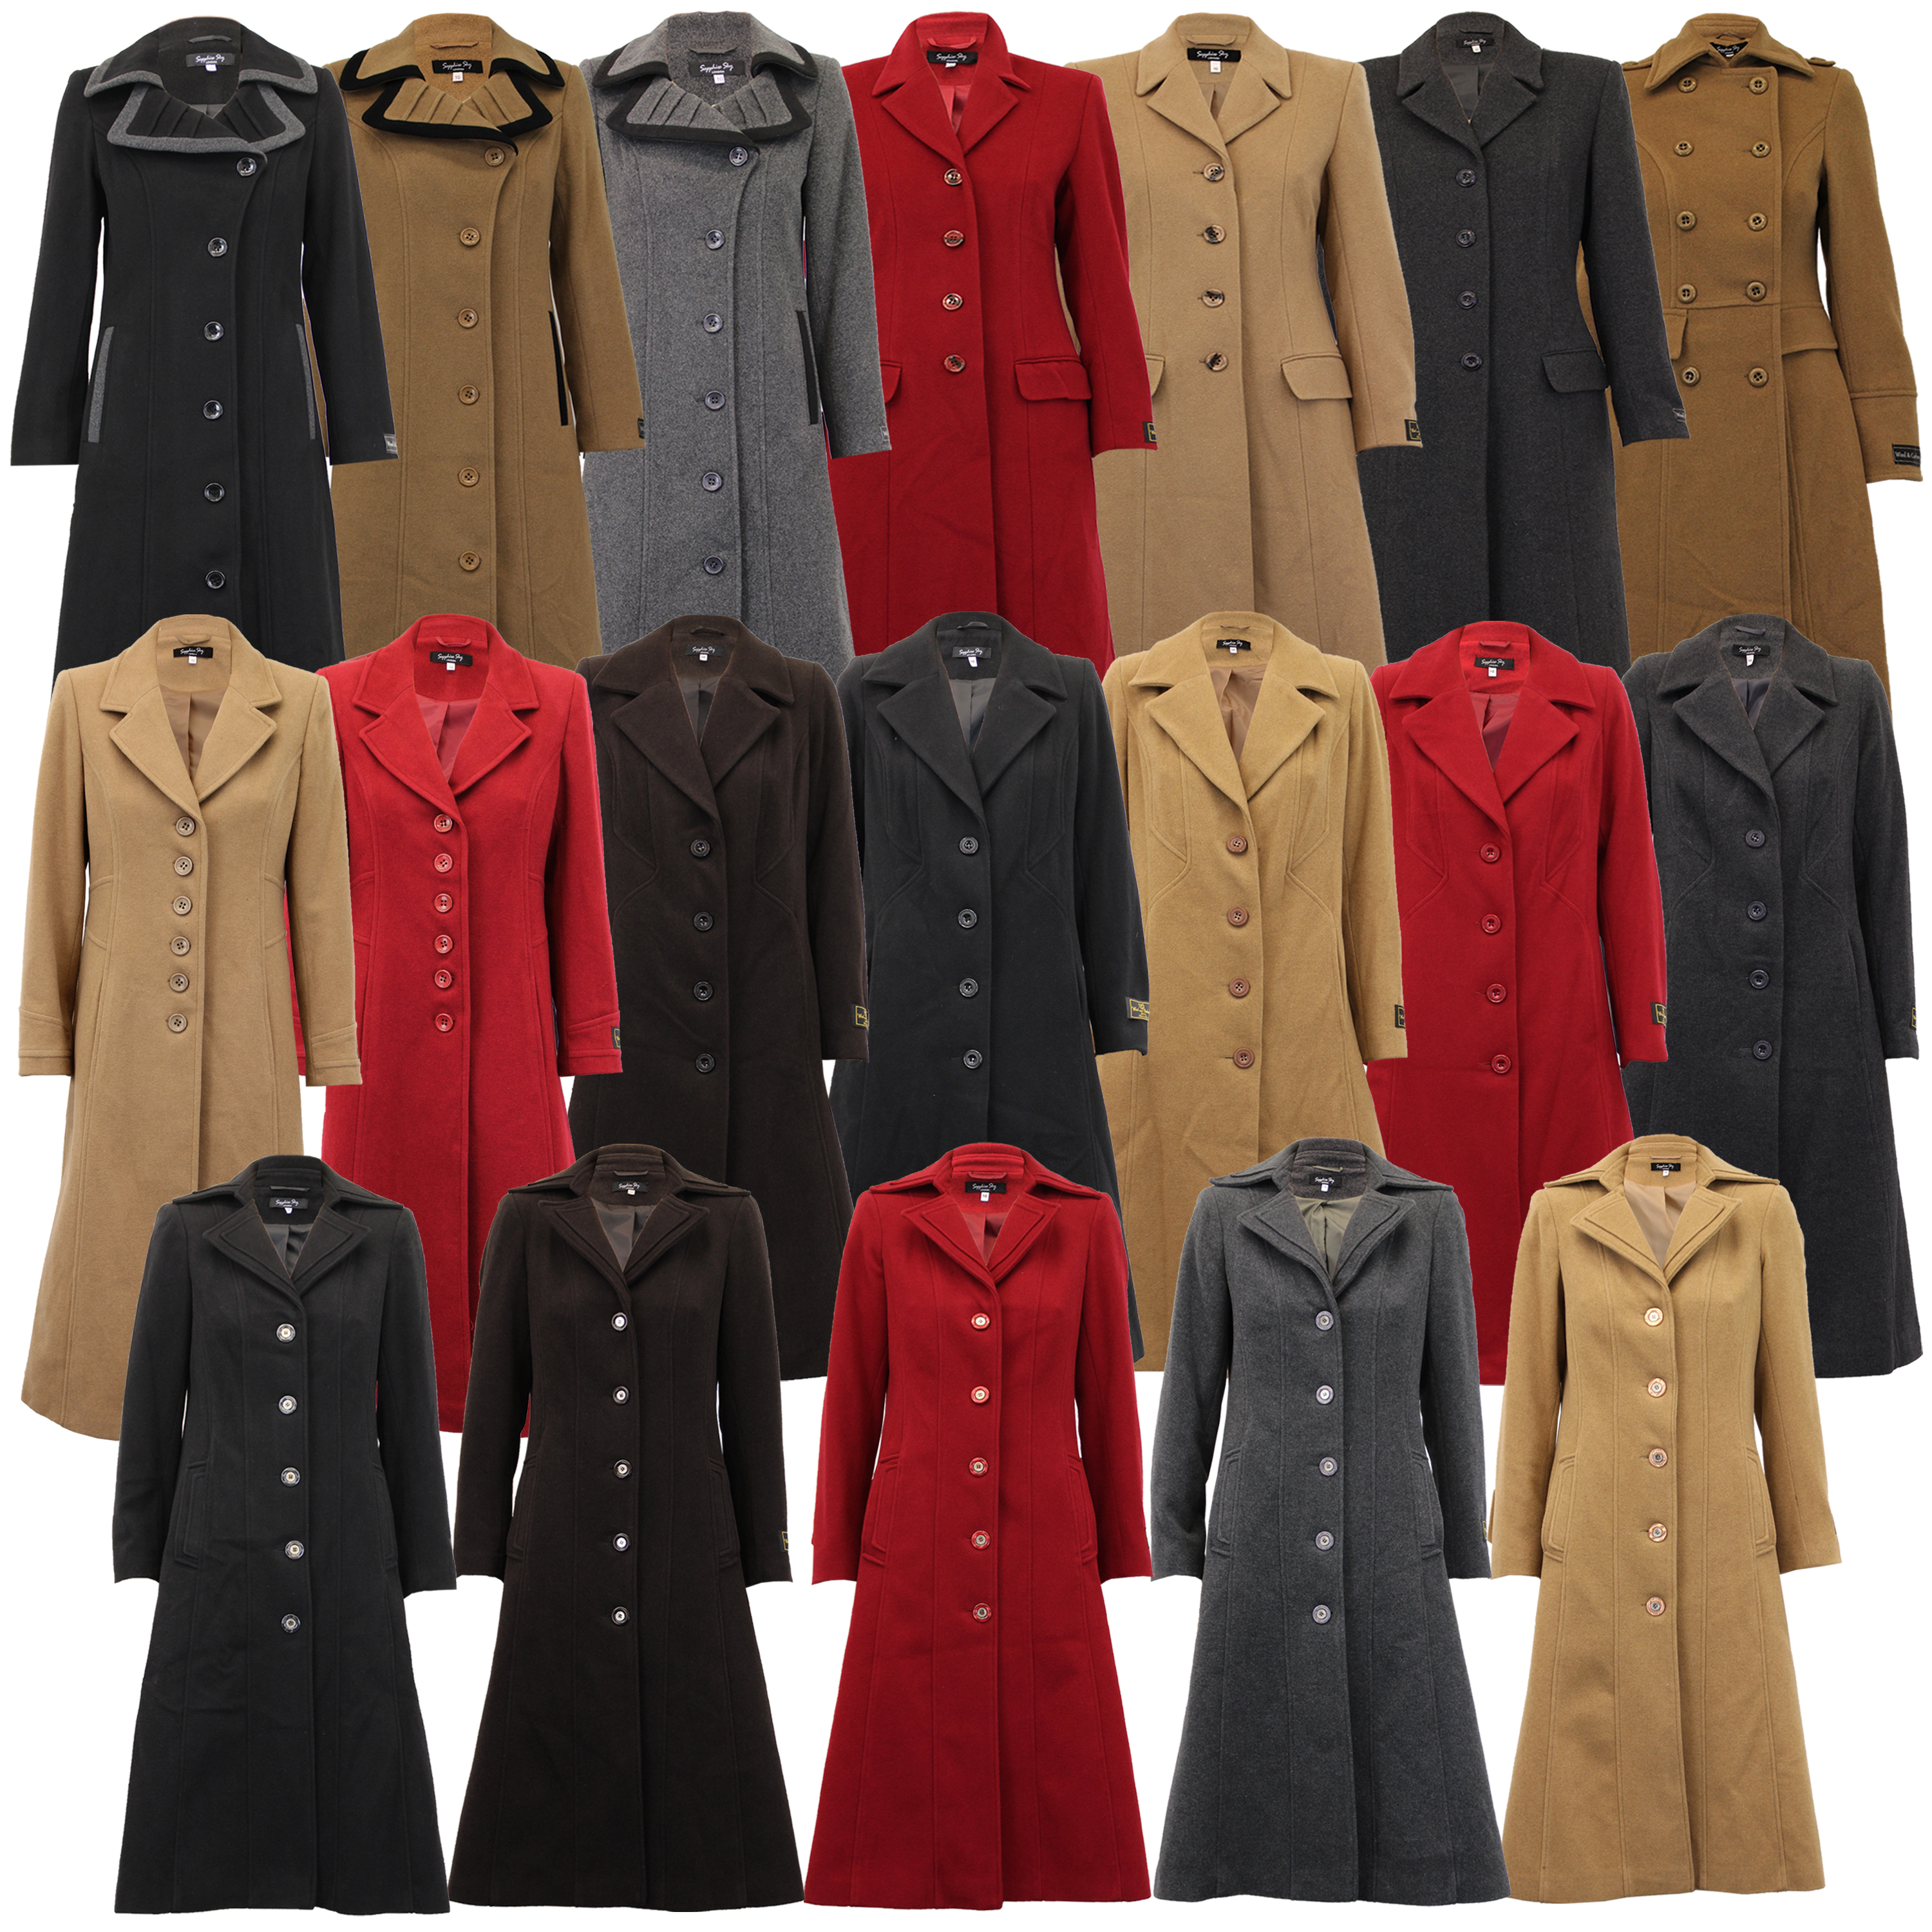 Ladies-Wool-Cashmere-Coat-Women-Jacket-Outerwear-Trench-Overcoat-Winter-Lined thumbnail 6